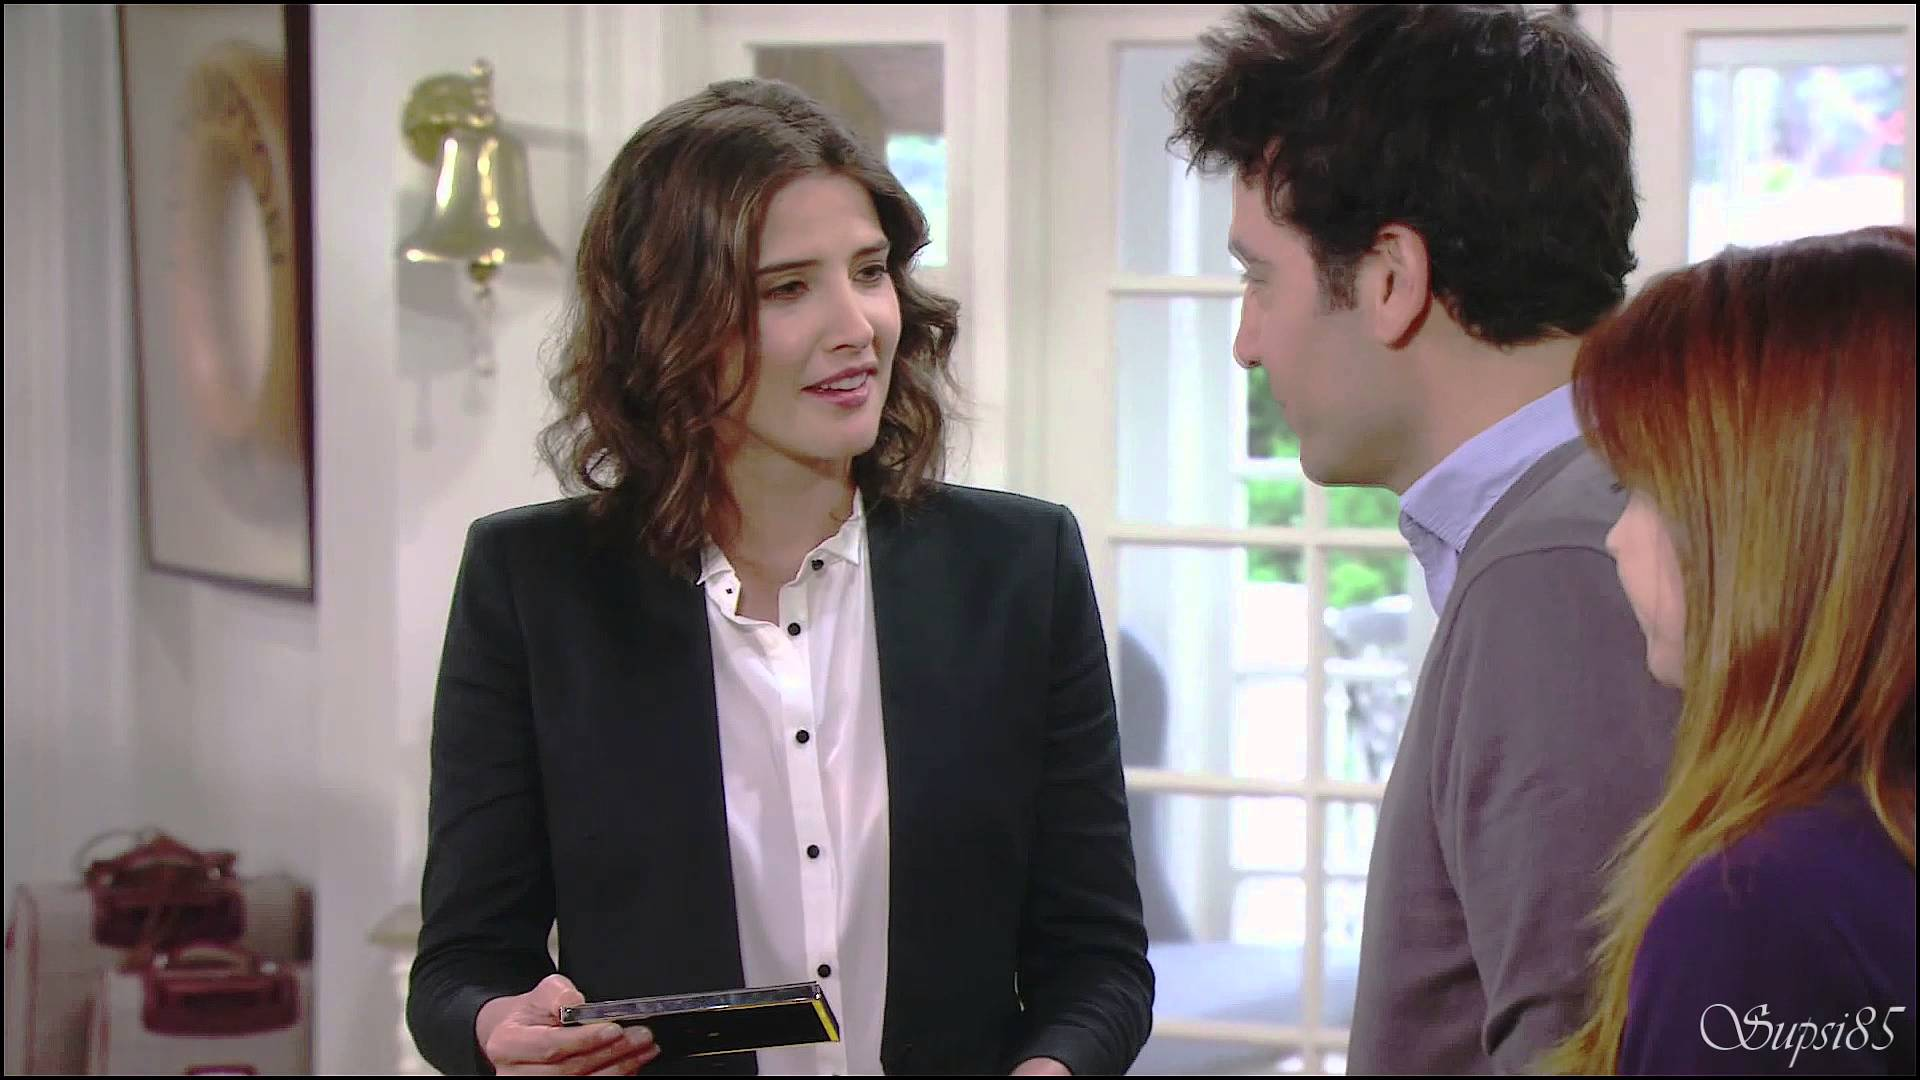 Ted/Robin [How I Met Your Mother] - Unspoken [9x04] - YouTube